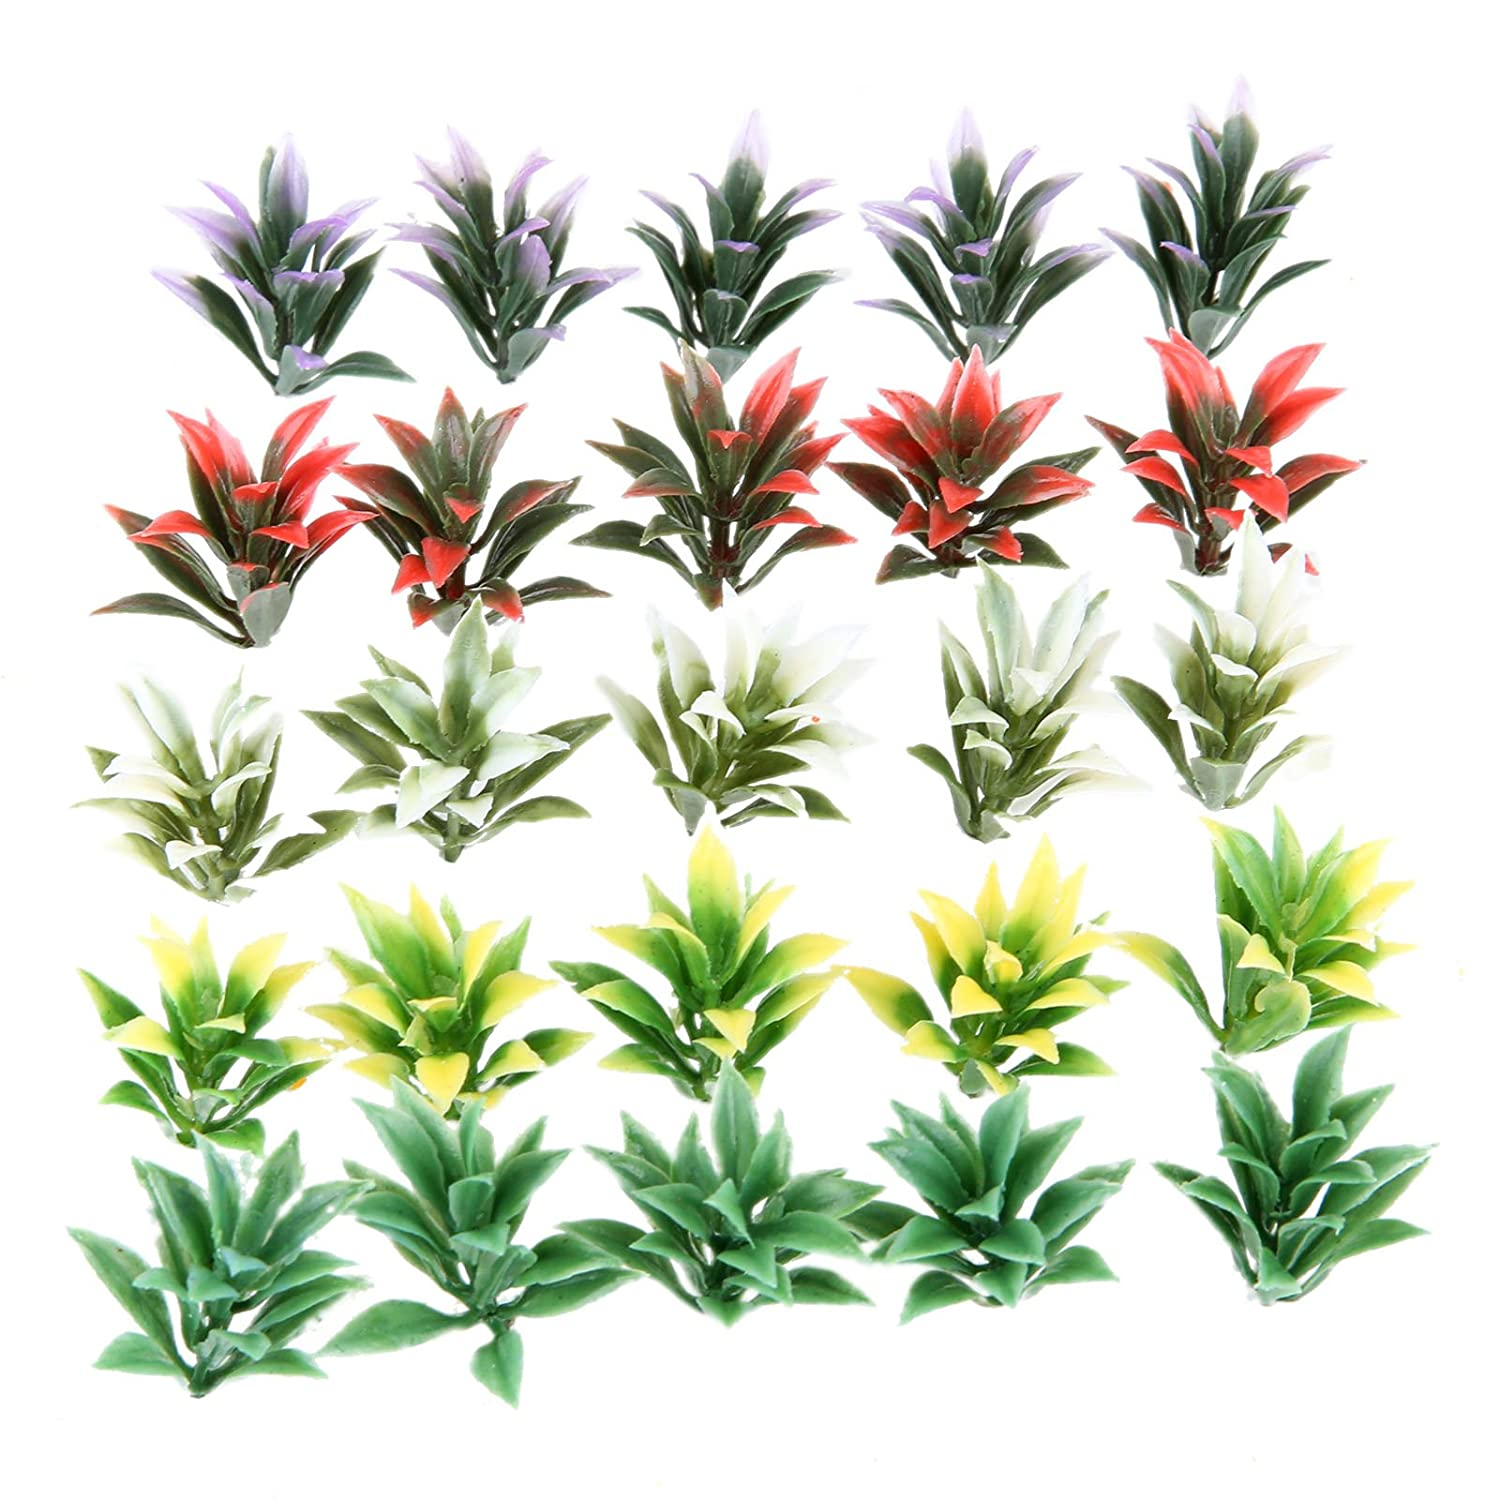 100Pcs Colorful Model Flowering Plants Railway Park Garden Scene 1:100 HO TT Scale Height 4cm Yetaha